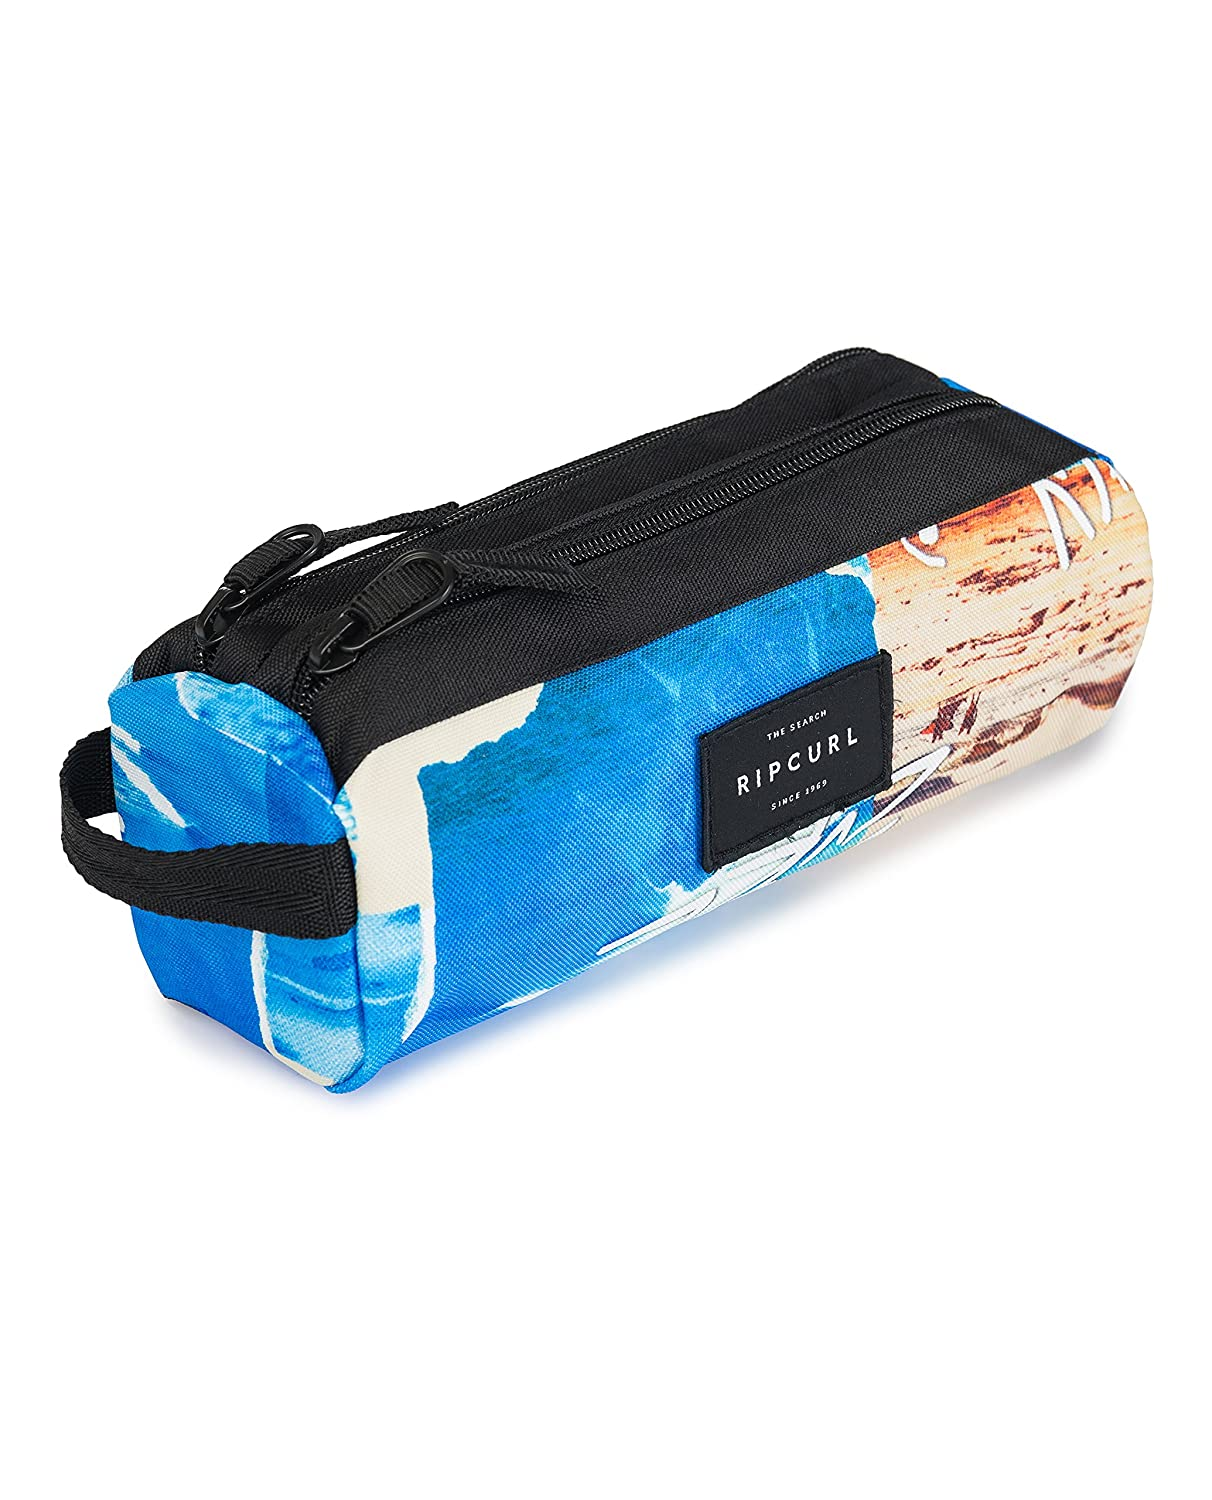 Rip Curl 4 Eqp Men butii1 Pencil Case 2 CP Póster/70893 Multico 3282: Amazon.es: Oficina y papelería